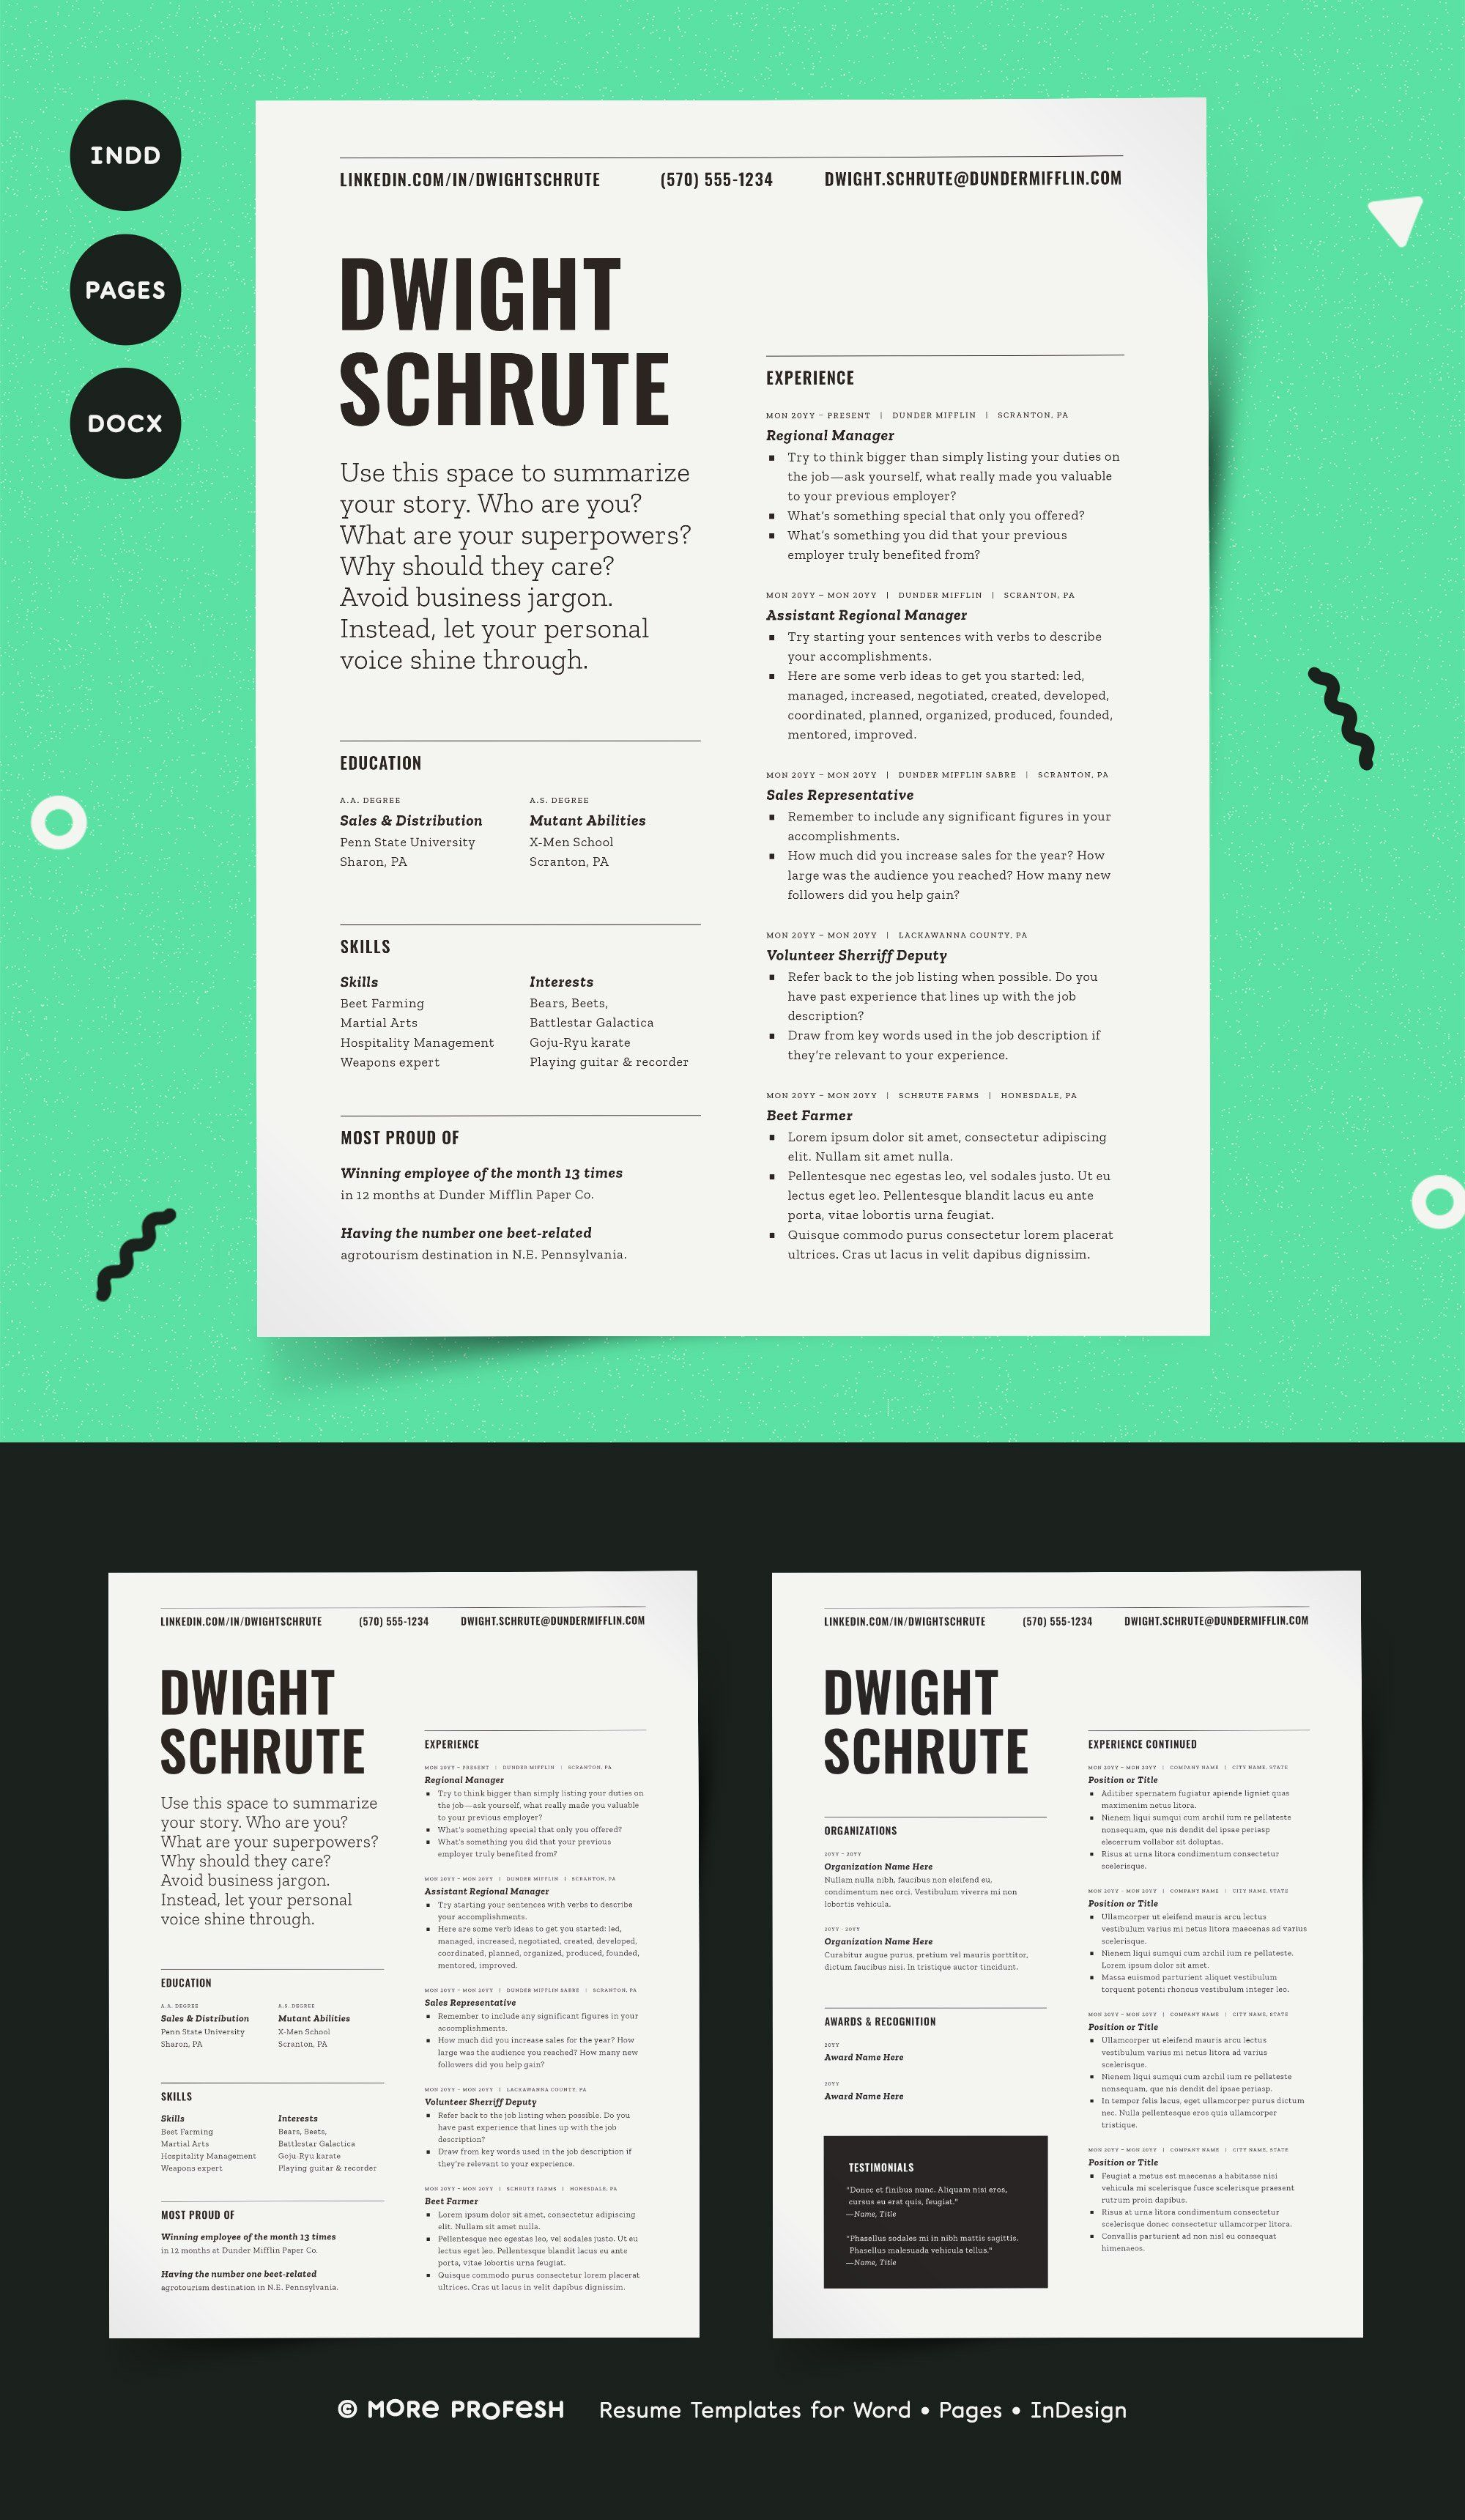 Resume Template For Word Pages Indesign By More Profesh On Creativemarket Resumetemplate Resume Cvtemplate